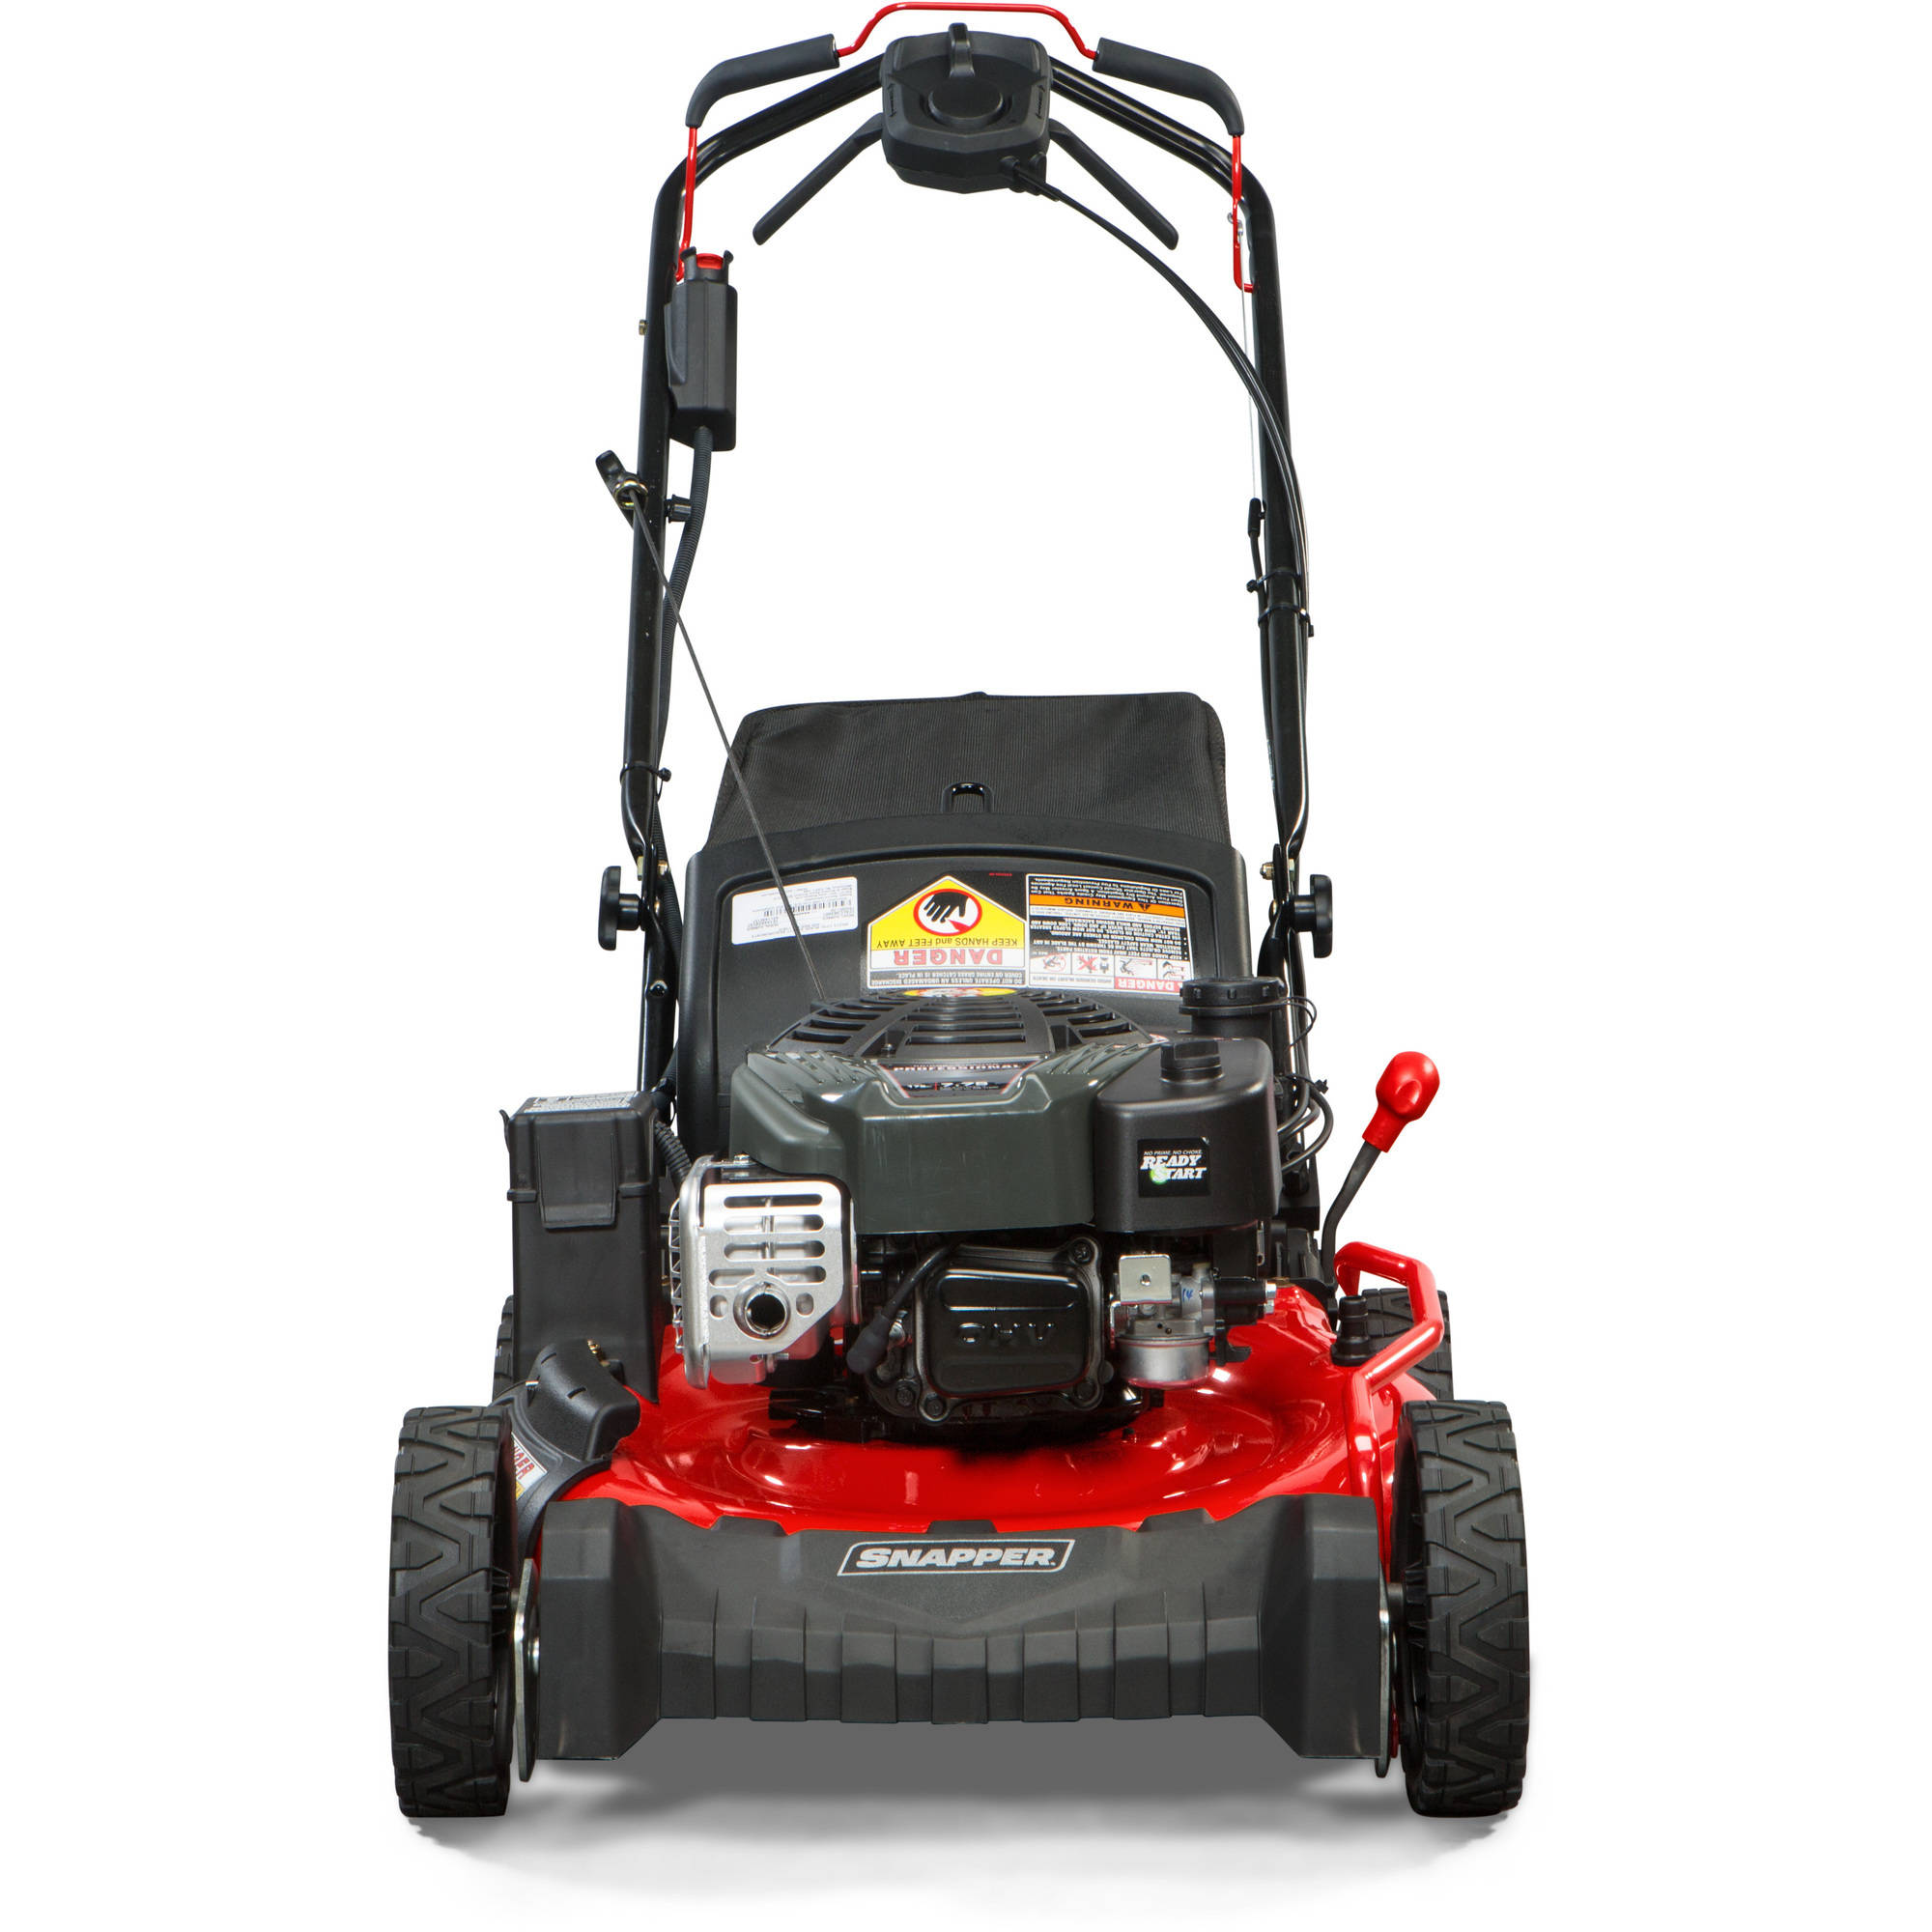 Snapper 21 Self Propelled Gas Rear Wheel Drive Mower With Side Walk Behind Wiring Diagram Discharge Mulching Bag And Electric Start